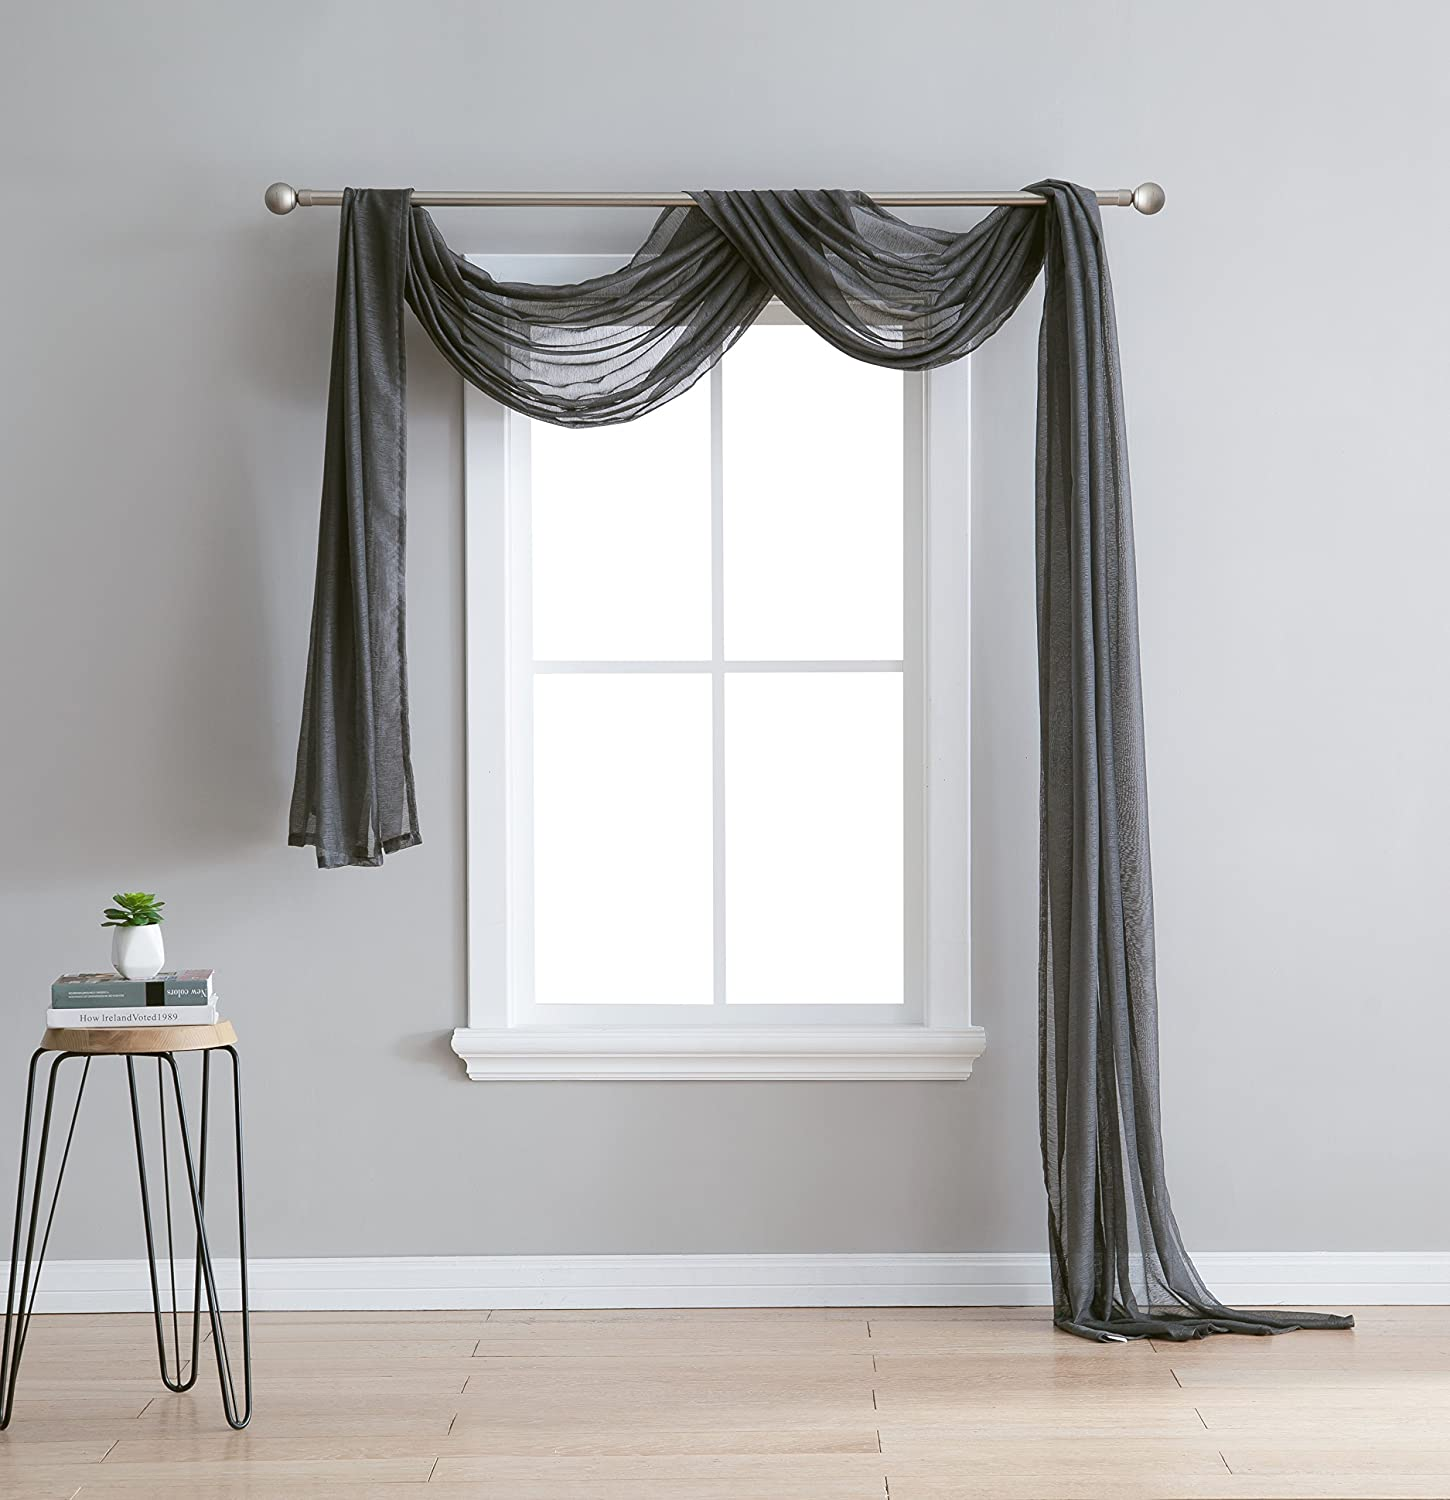 Charcoal Jane - Semi-Sheer Window Scarf (54 x 216) - Elegant Home Decor Window Treatments